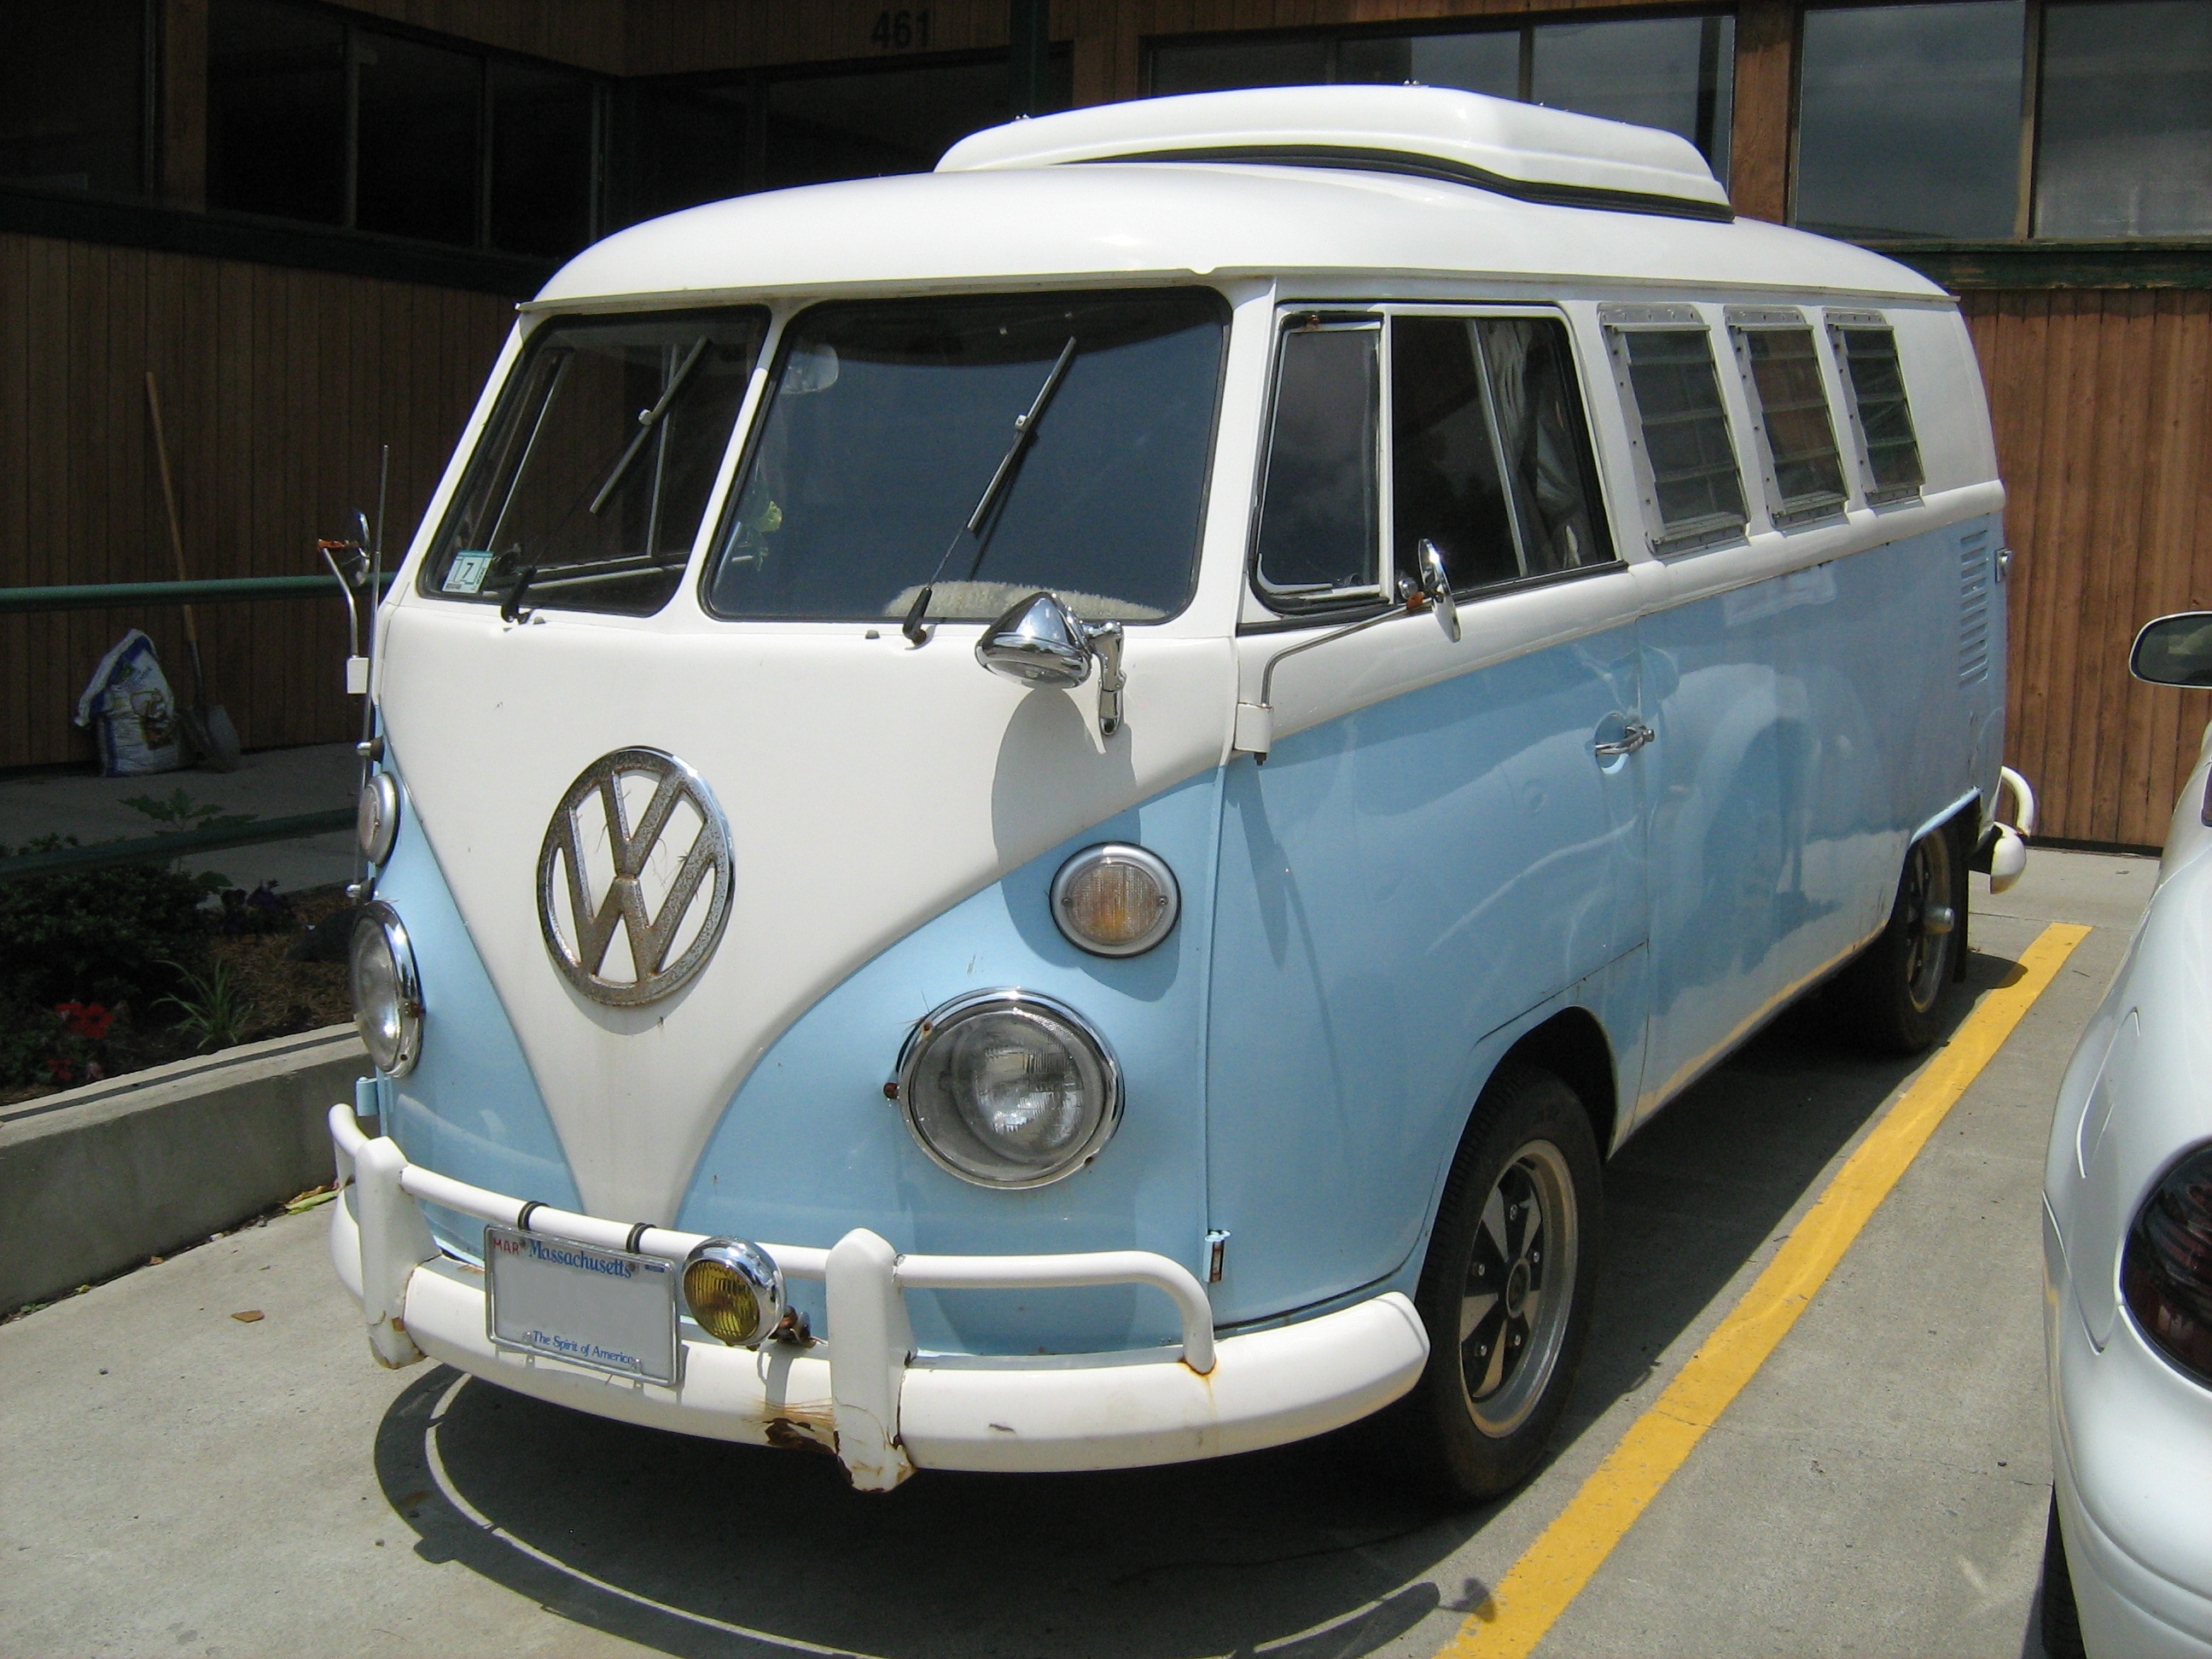 File Vw Camper Asu Blueandwhite Fl Jpg Wikimedia Commons